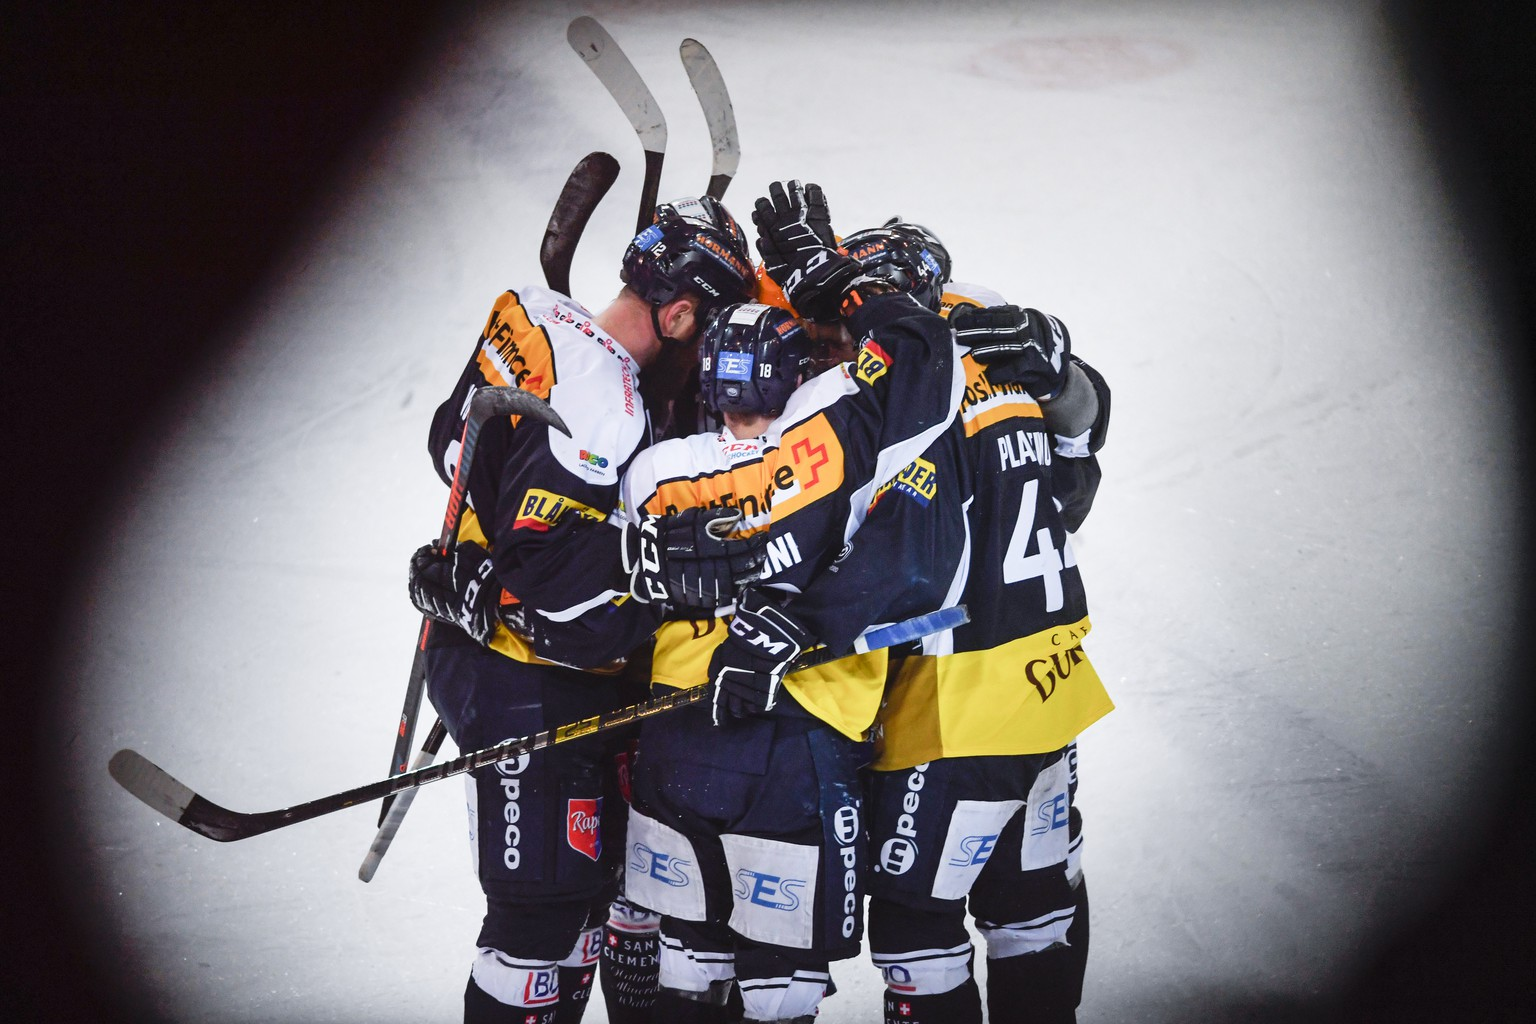 Ambri's player Matt D'Agostini celebrate withj teammate the 2-2 goal against Lausanne's player Stephan Tobias, during the preliminary round game of National League A (NLA) Swiss Championship 2019/20 between HC Ambri Piotta and HC Lausanne at the ice stadium Valascia in Ambri, Switzerland, Saturday, February 15, 2020..(KEYSTONE - ATS/Ti-Press/Alessandro Crinari).